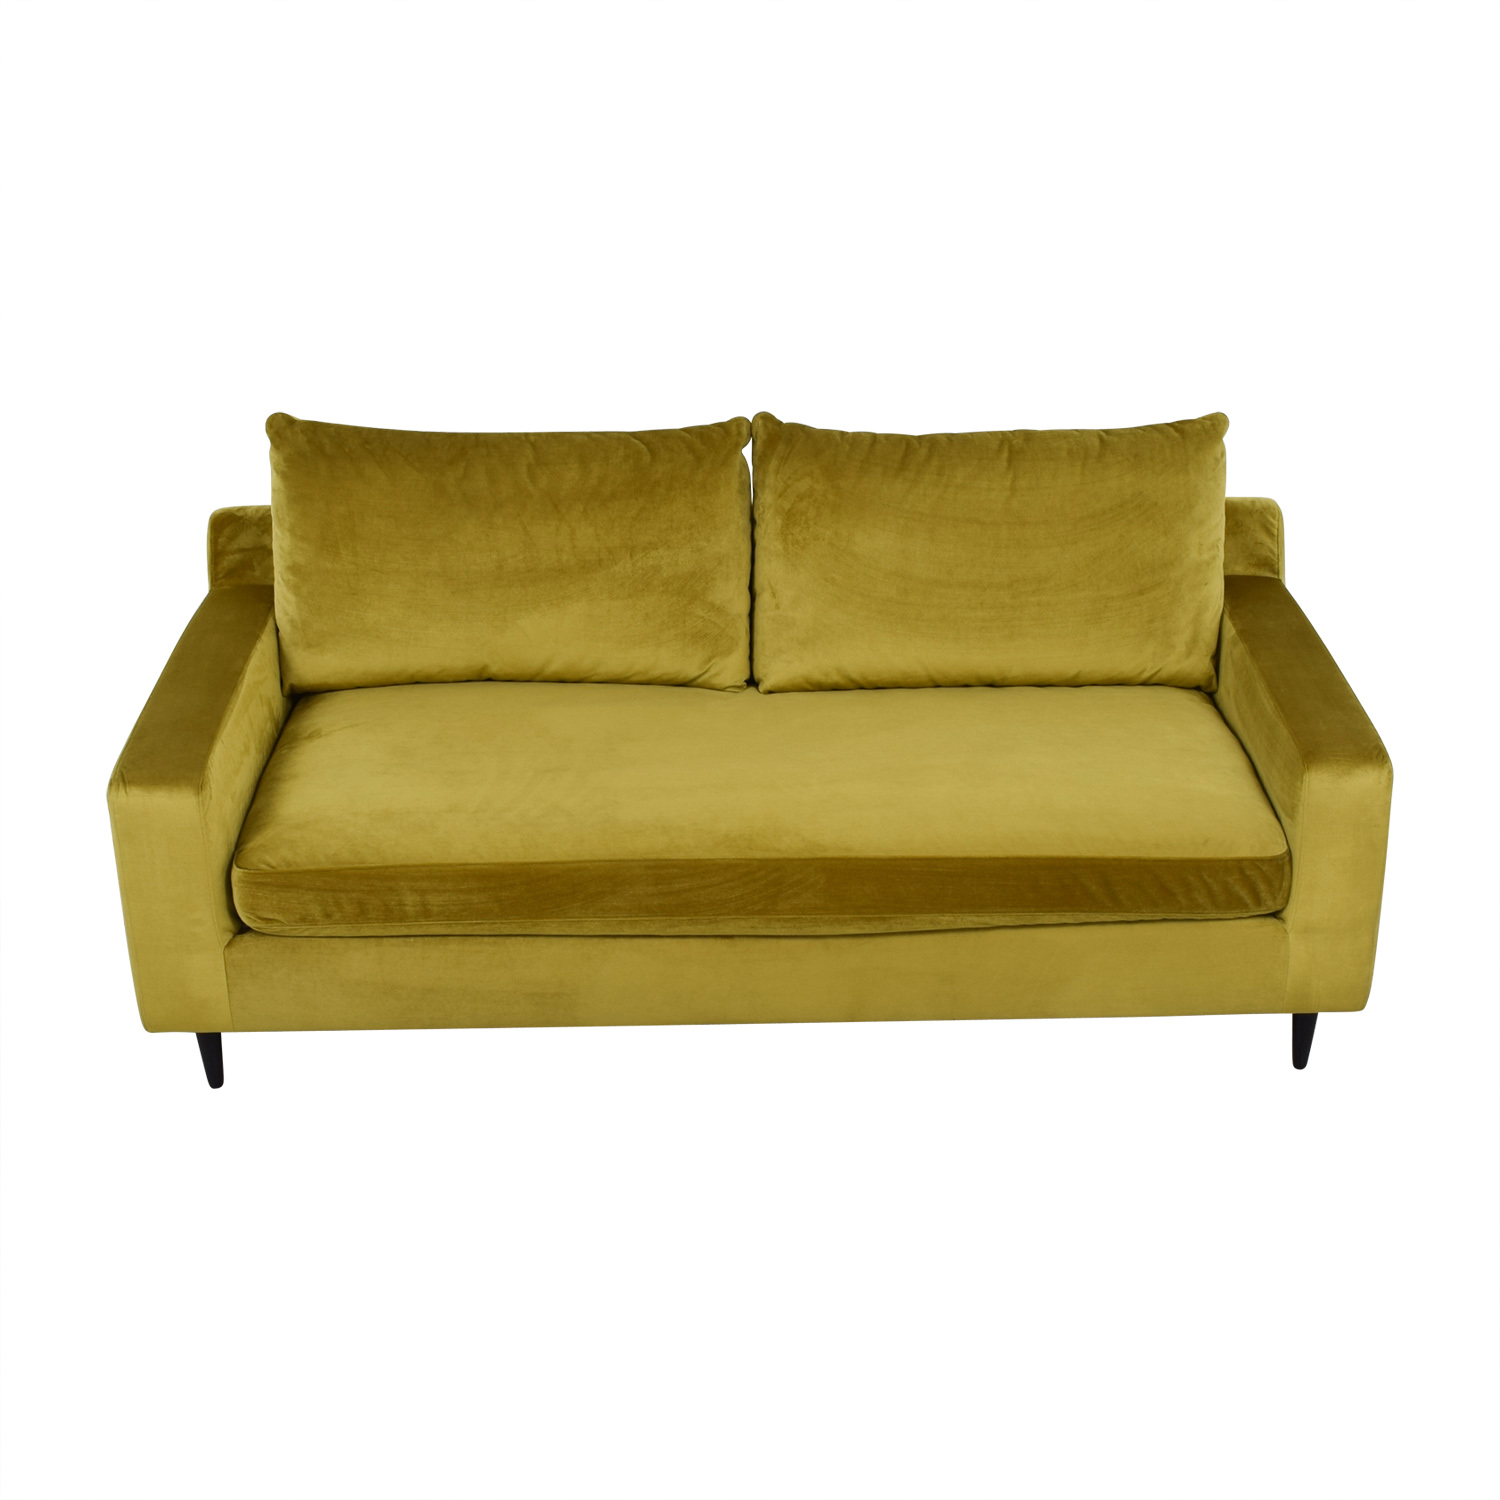 shop Sloan Yellow Velvet Single Cushion Sofa  Sofas